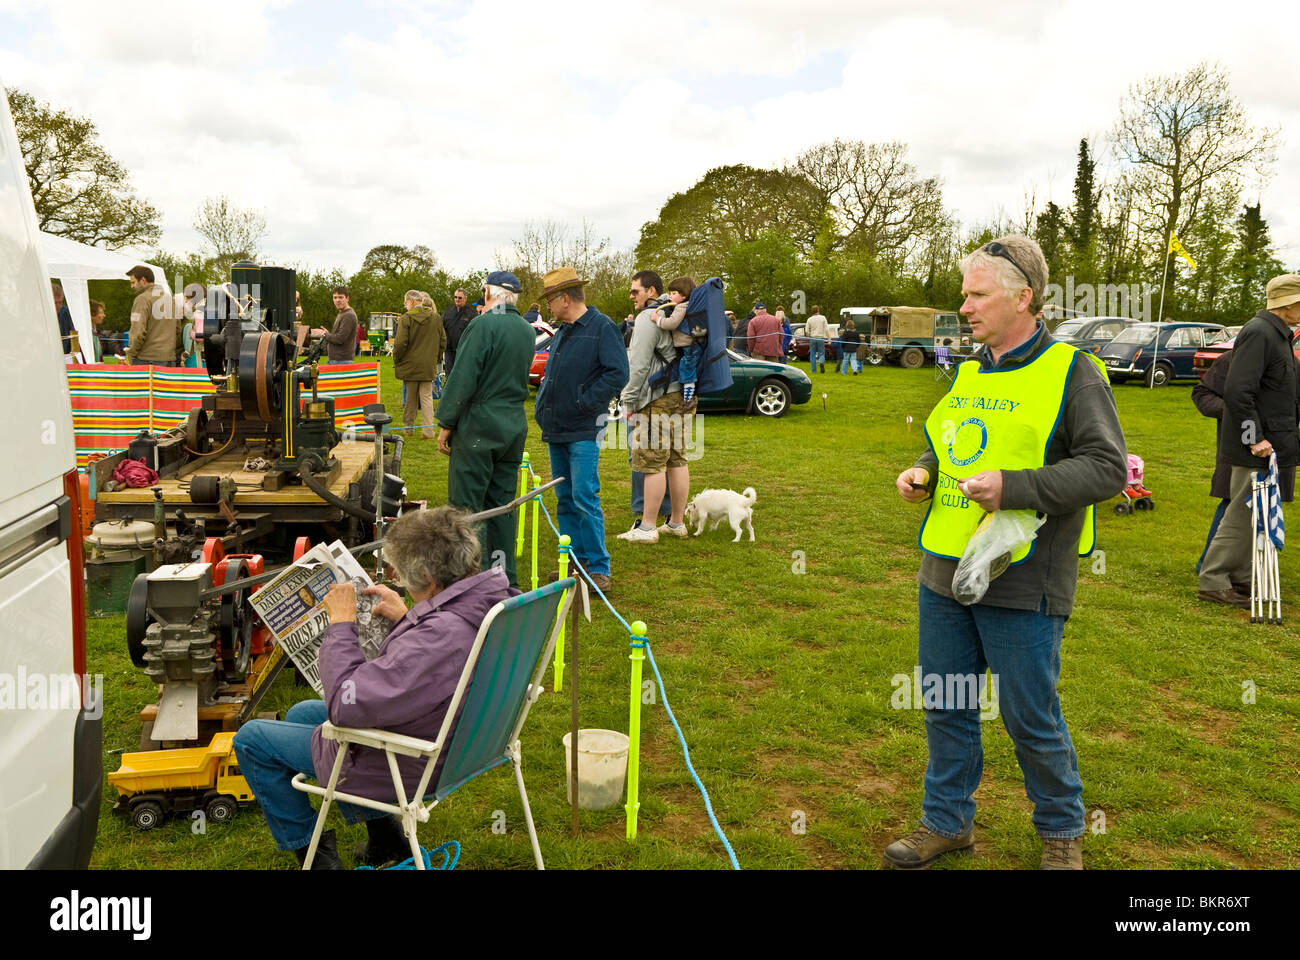 County or country show with official approaching a lady in a deckchair reading a newspaper, Devon England UK 2010 - Stock Image